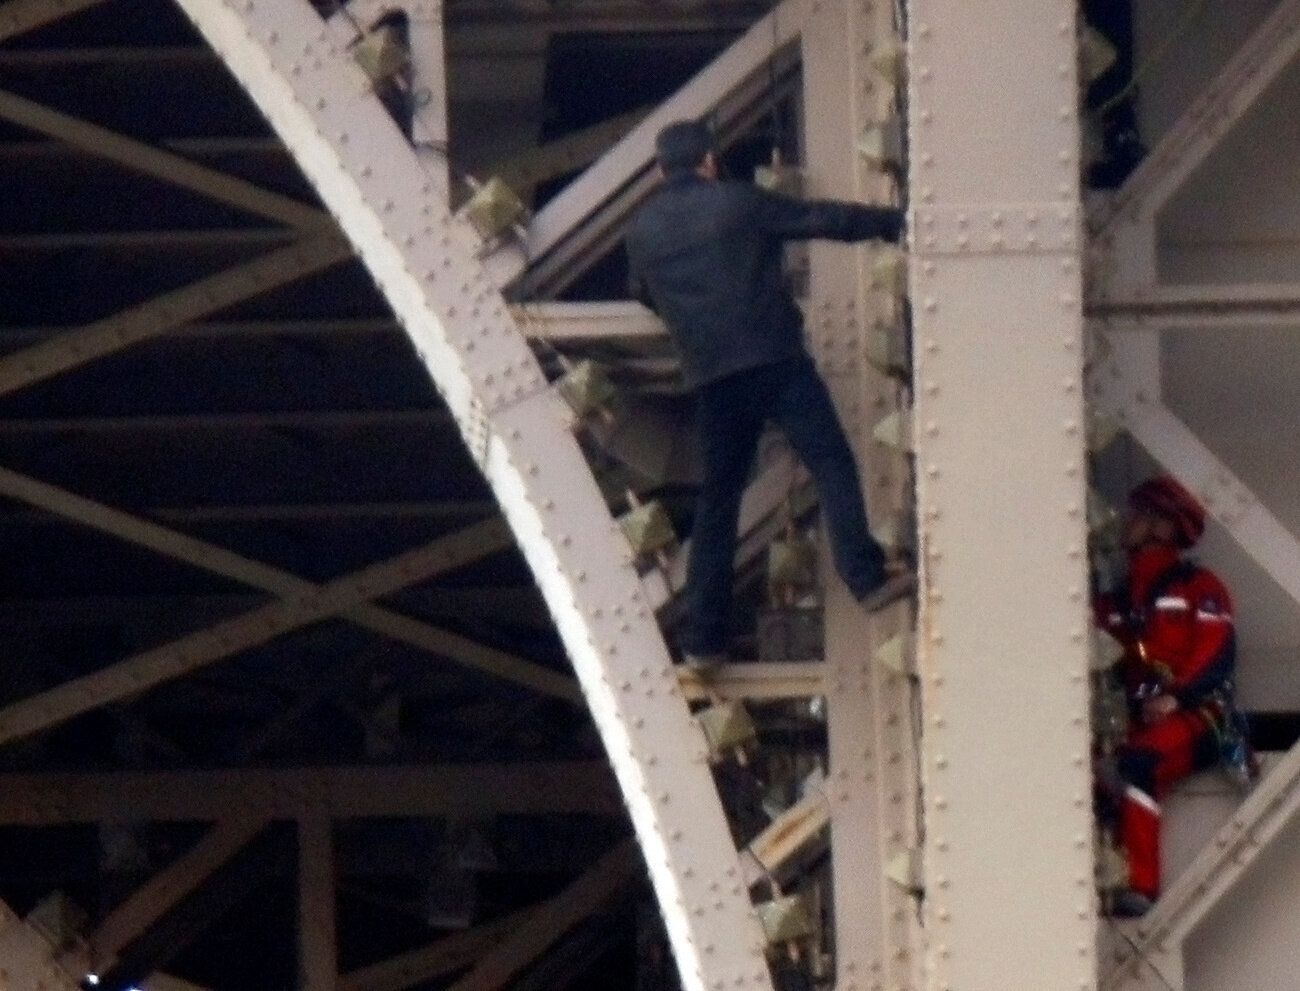 Eiffel Tower Evacuated After Man Starts Climbing It